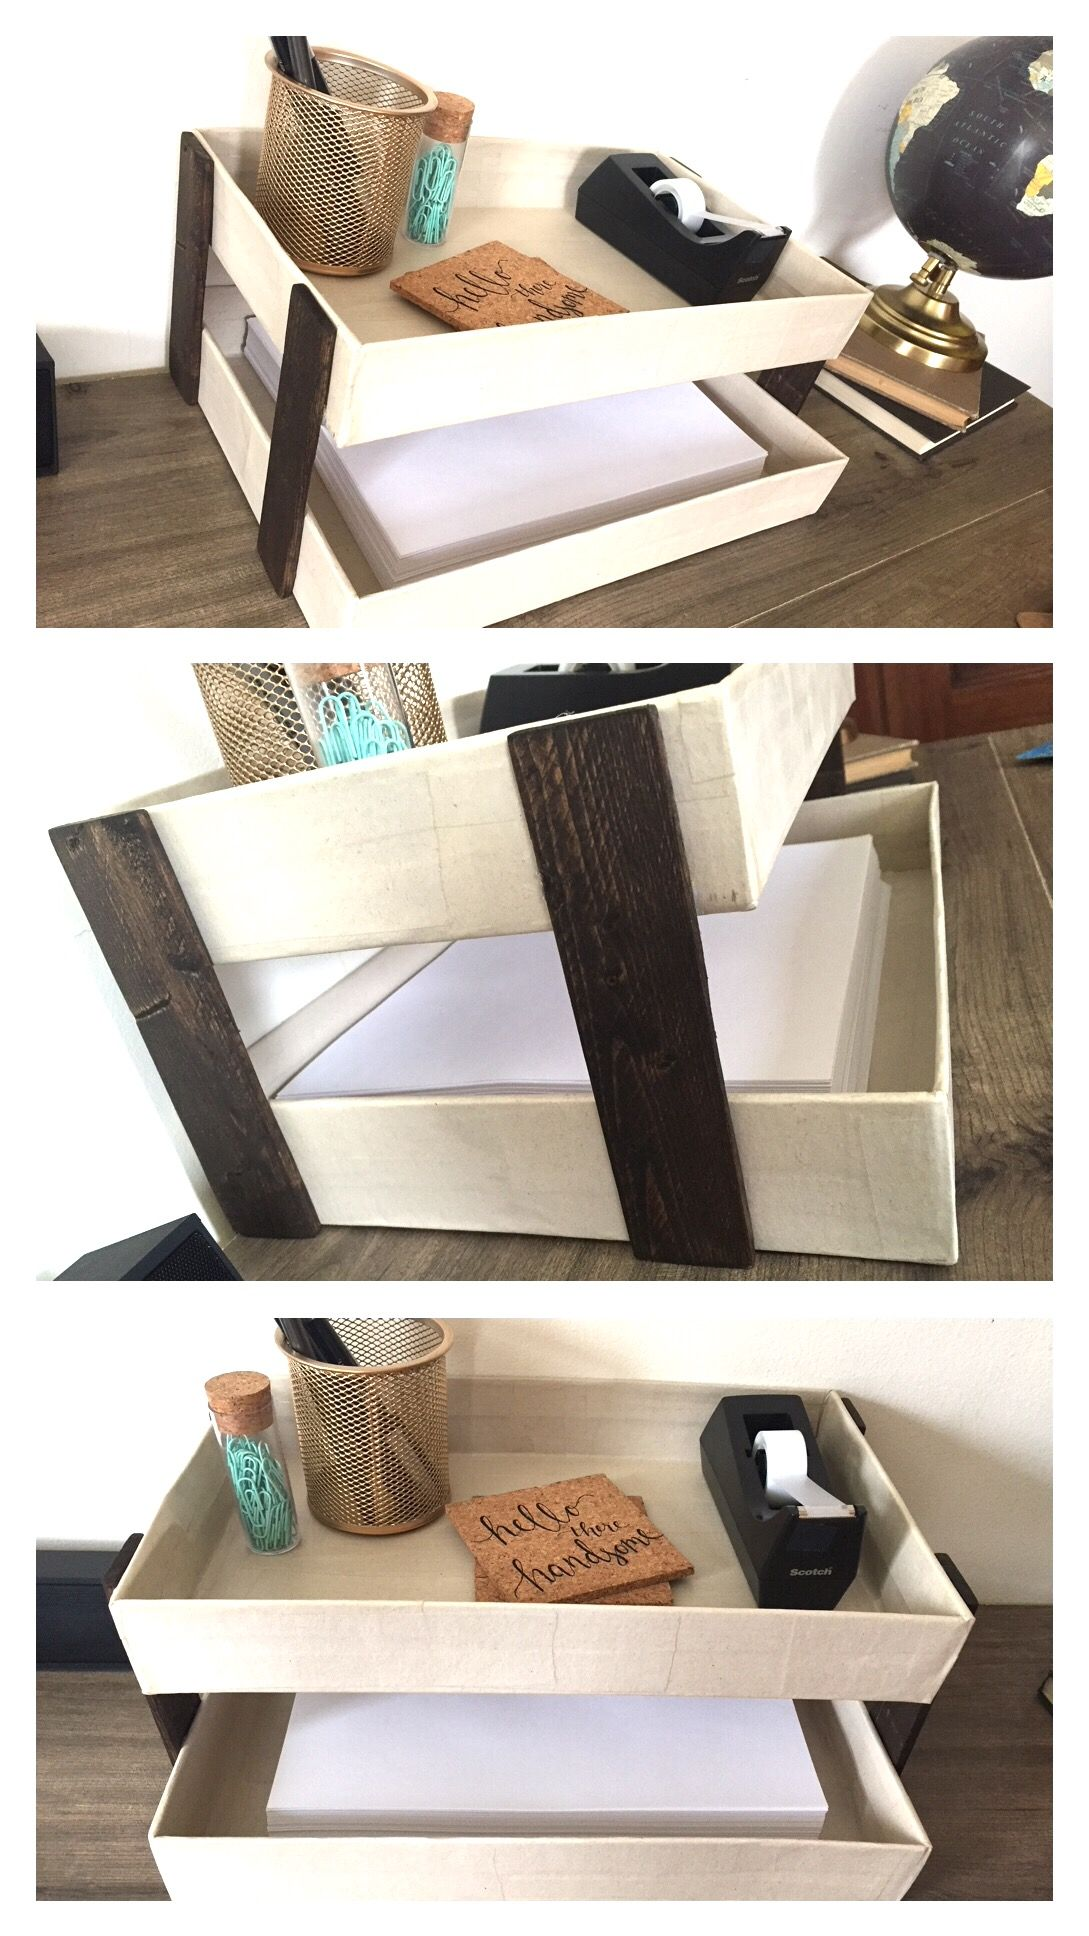 DIY Desk Organizer HOW TO paper mache' over 2 shoe box